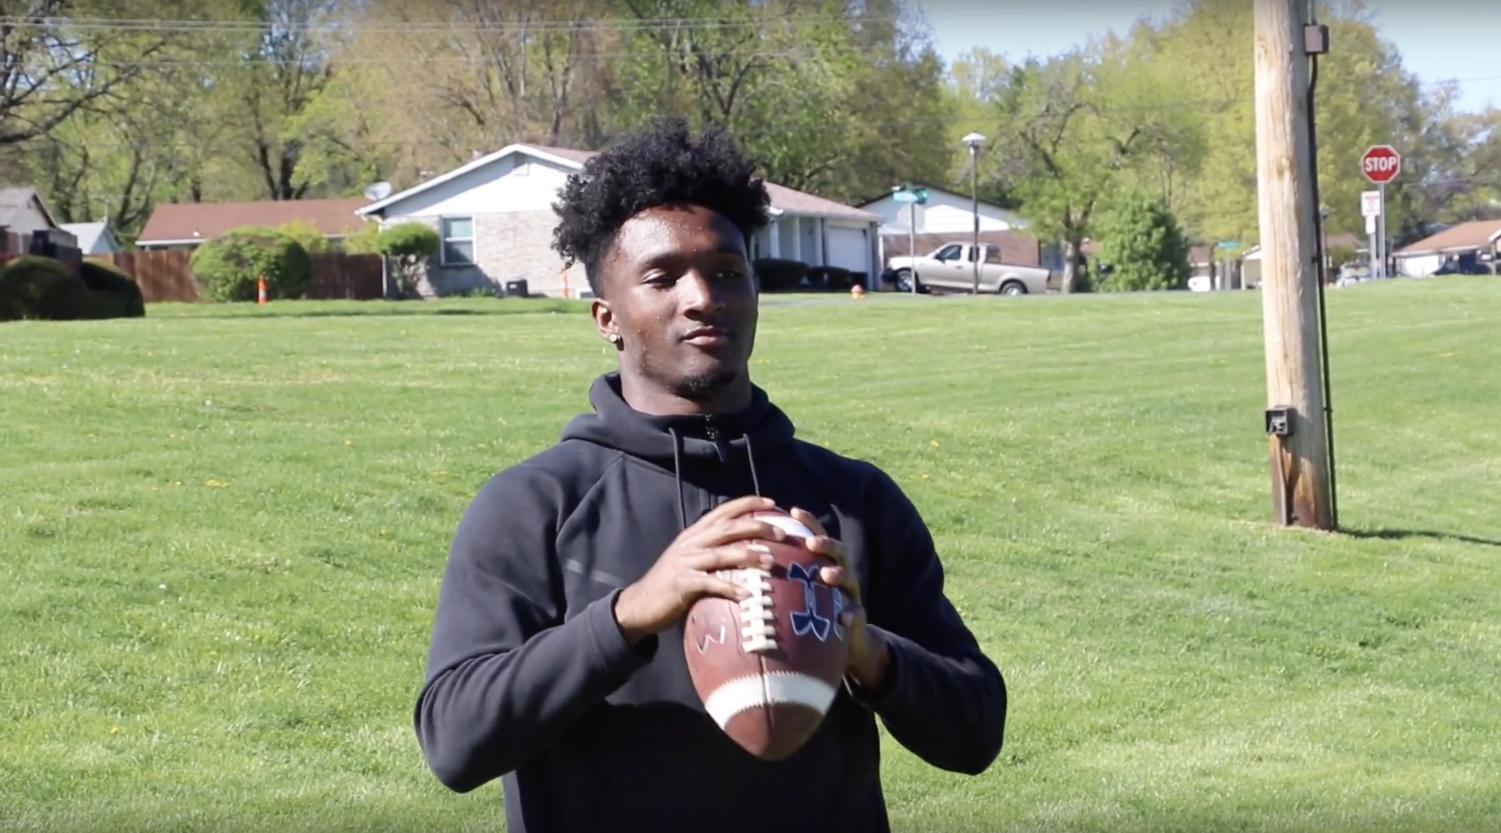 lllinois football recruit Isaiah Williams plays catch near his home in the St. Louis-area. Williams is a quarterback with significant arm talent, and tight end coach Cory Patterson played a role in his decision to play for Illinois.